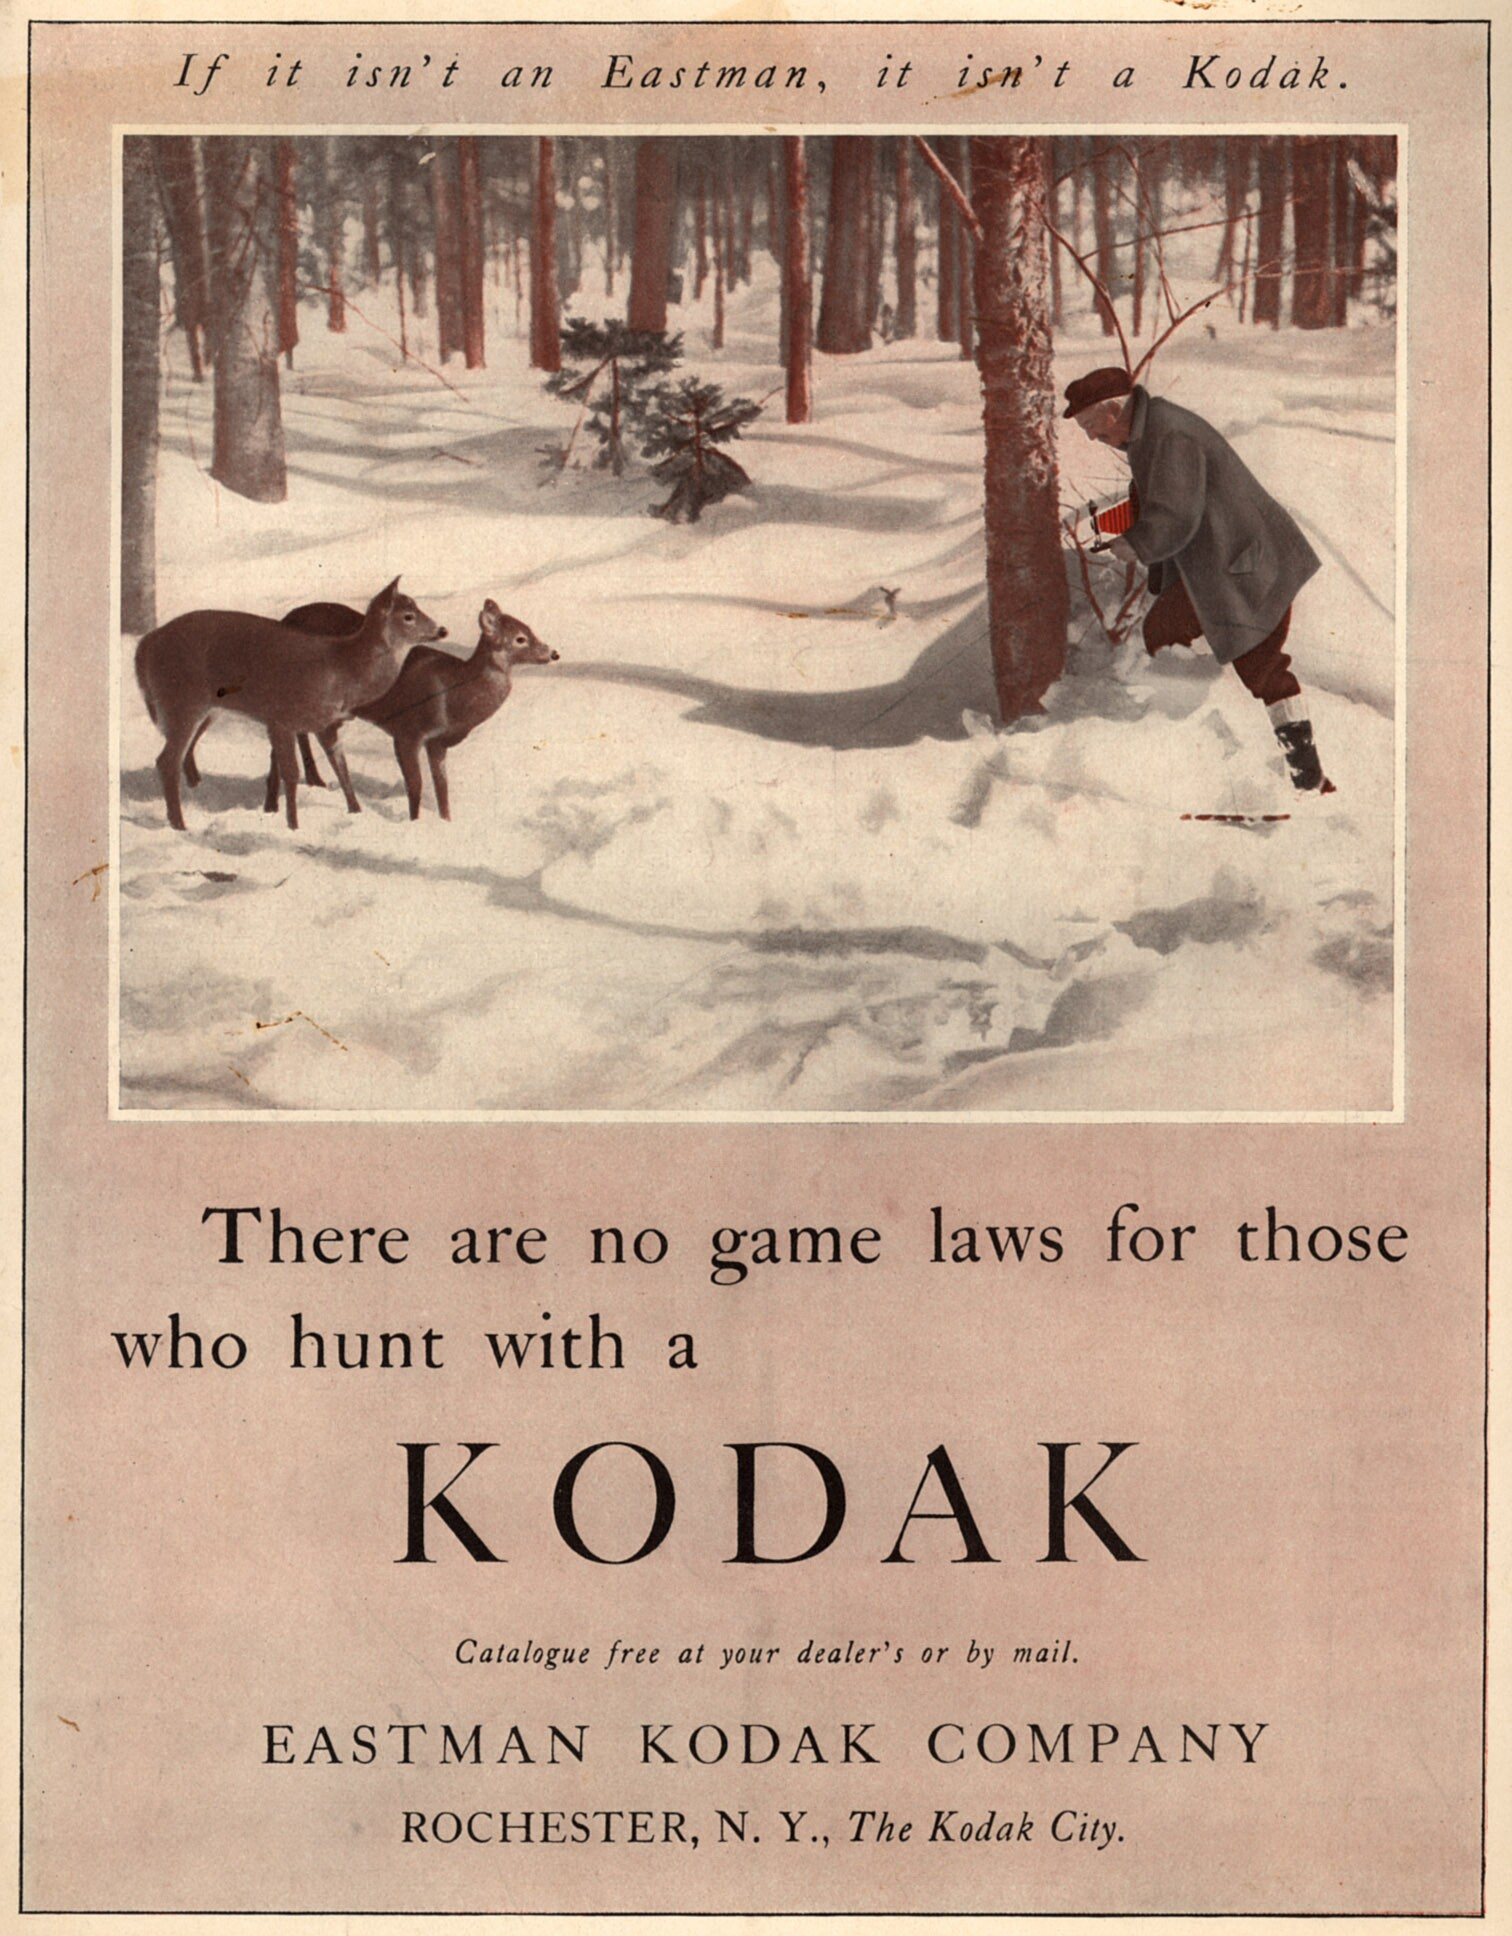 There are No Game Laws for Those Who Hunt with a Kodak advertisement